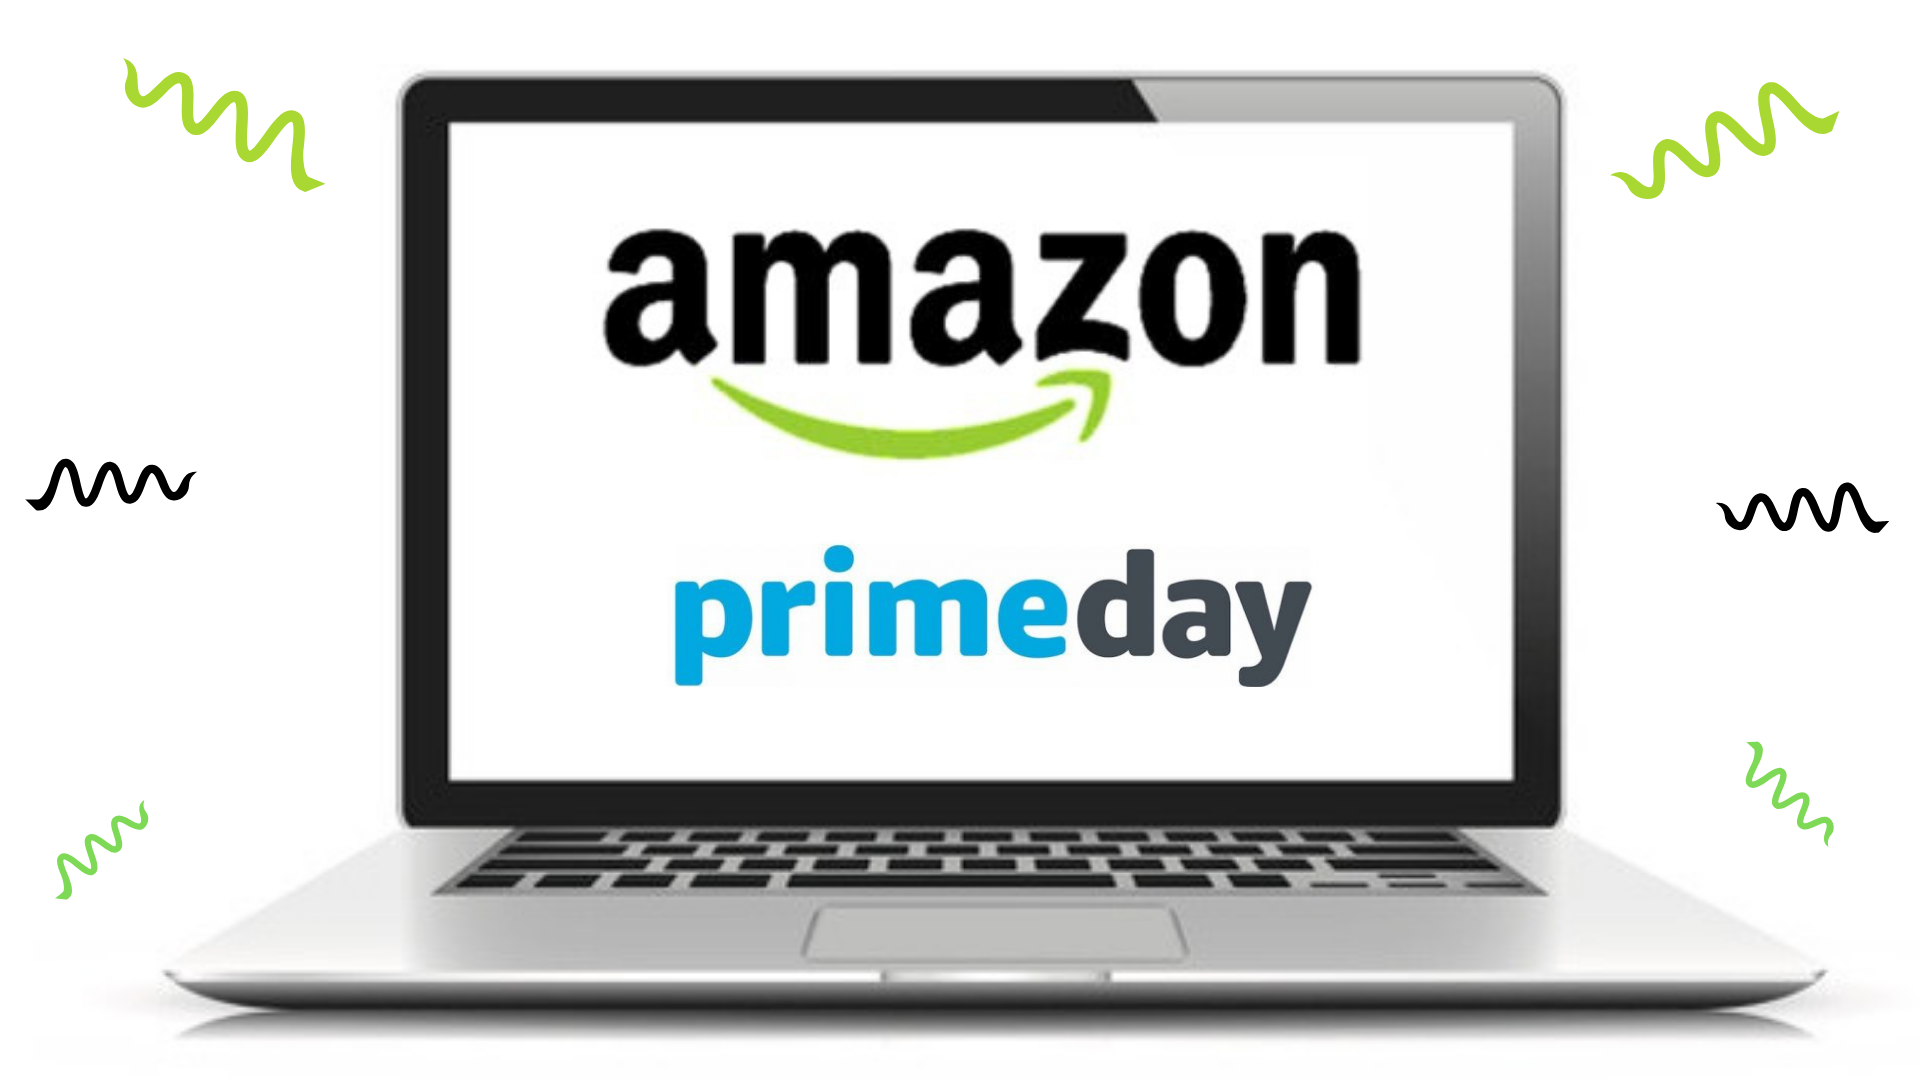 Amazon Prime Day, la gran oportunidad para los vendedores